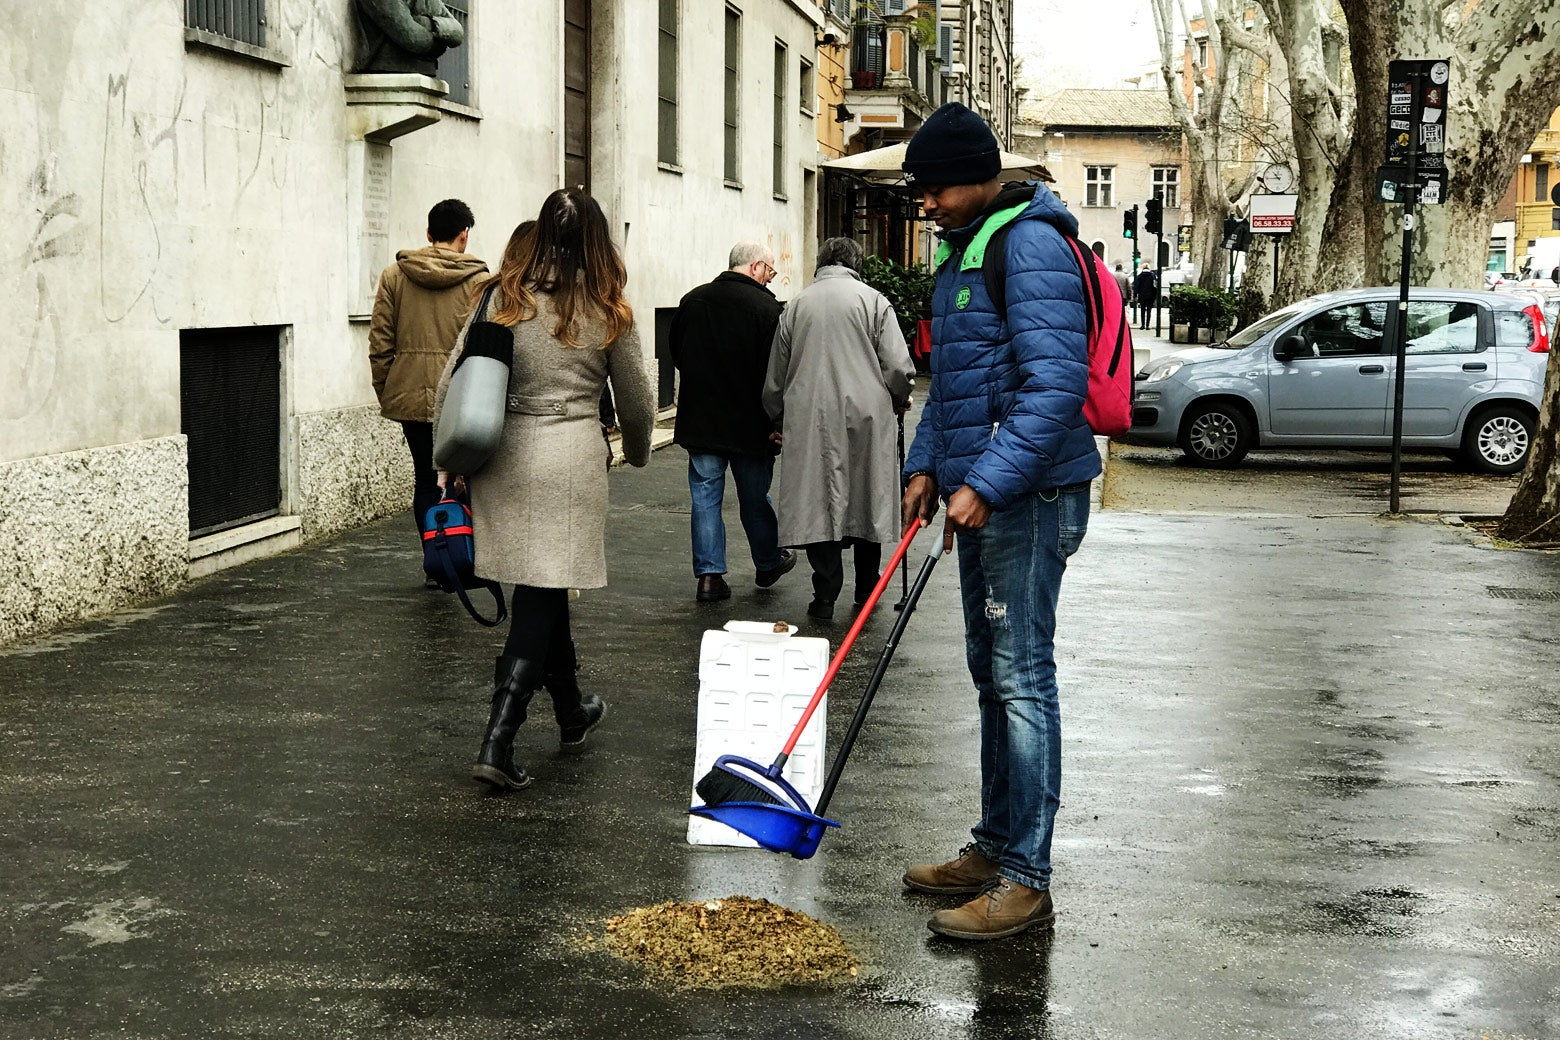 A street sweeper in Rome.